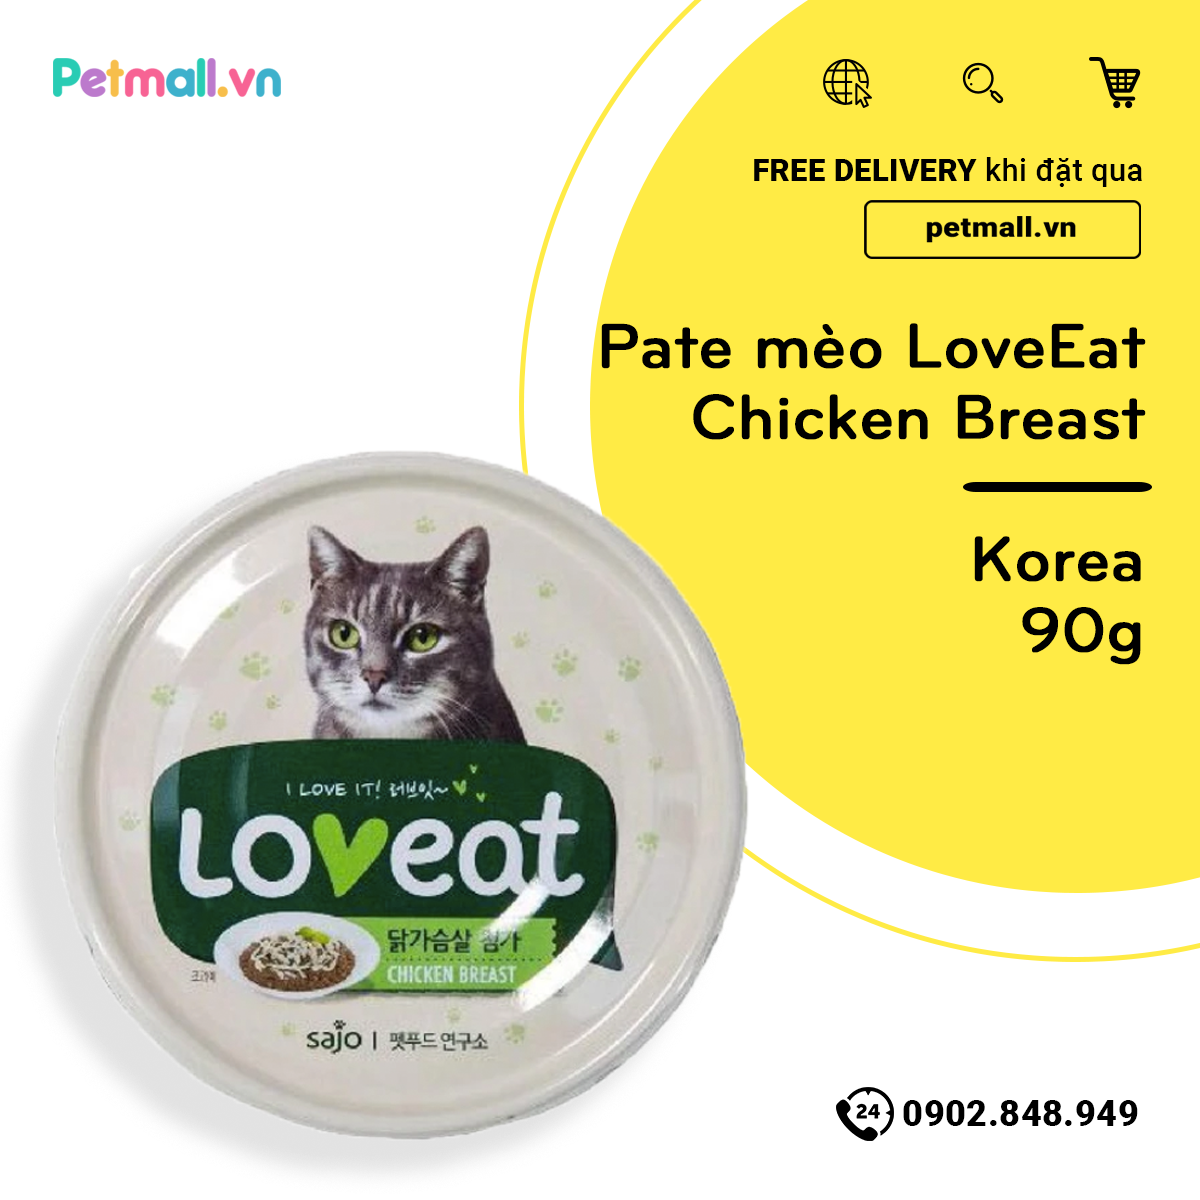 Pate mèo LoveEat Chicken Breast 90g - Korea